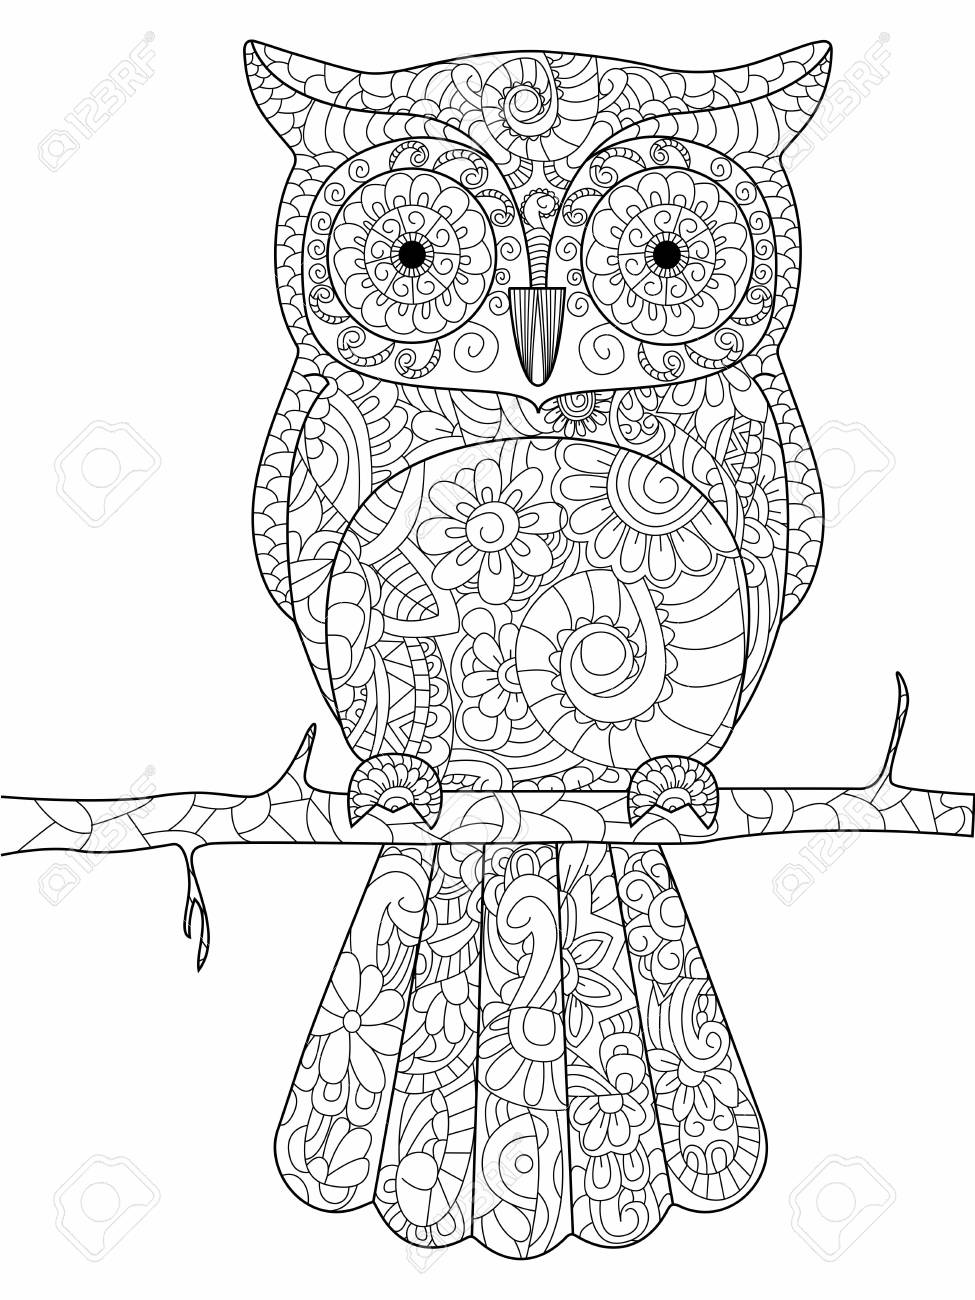 Owl On A Branch Coloring Book For Adults Raster Illustration